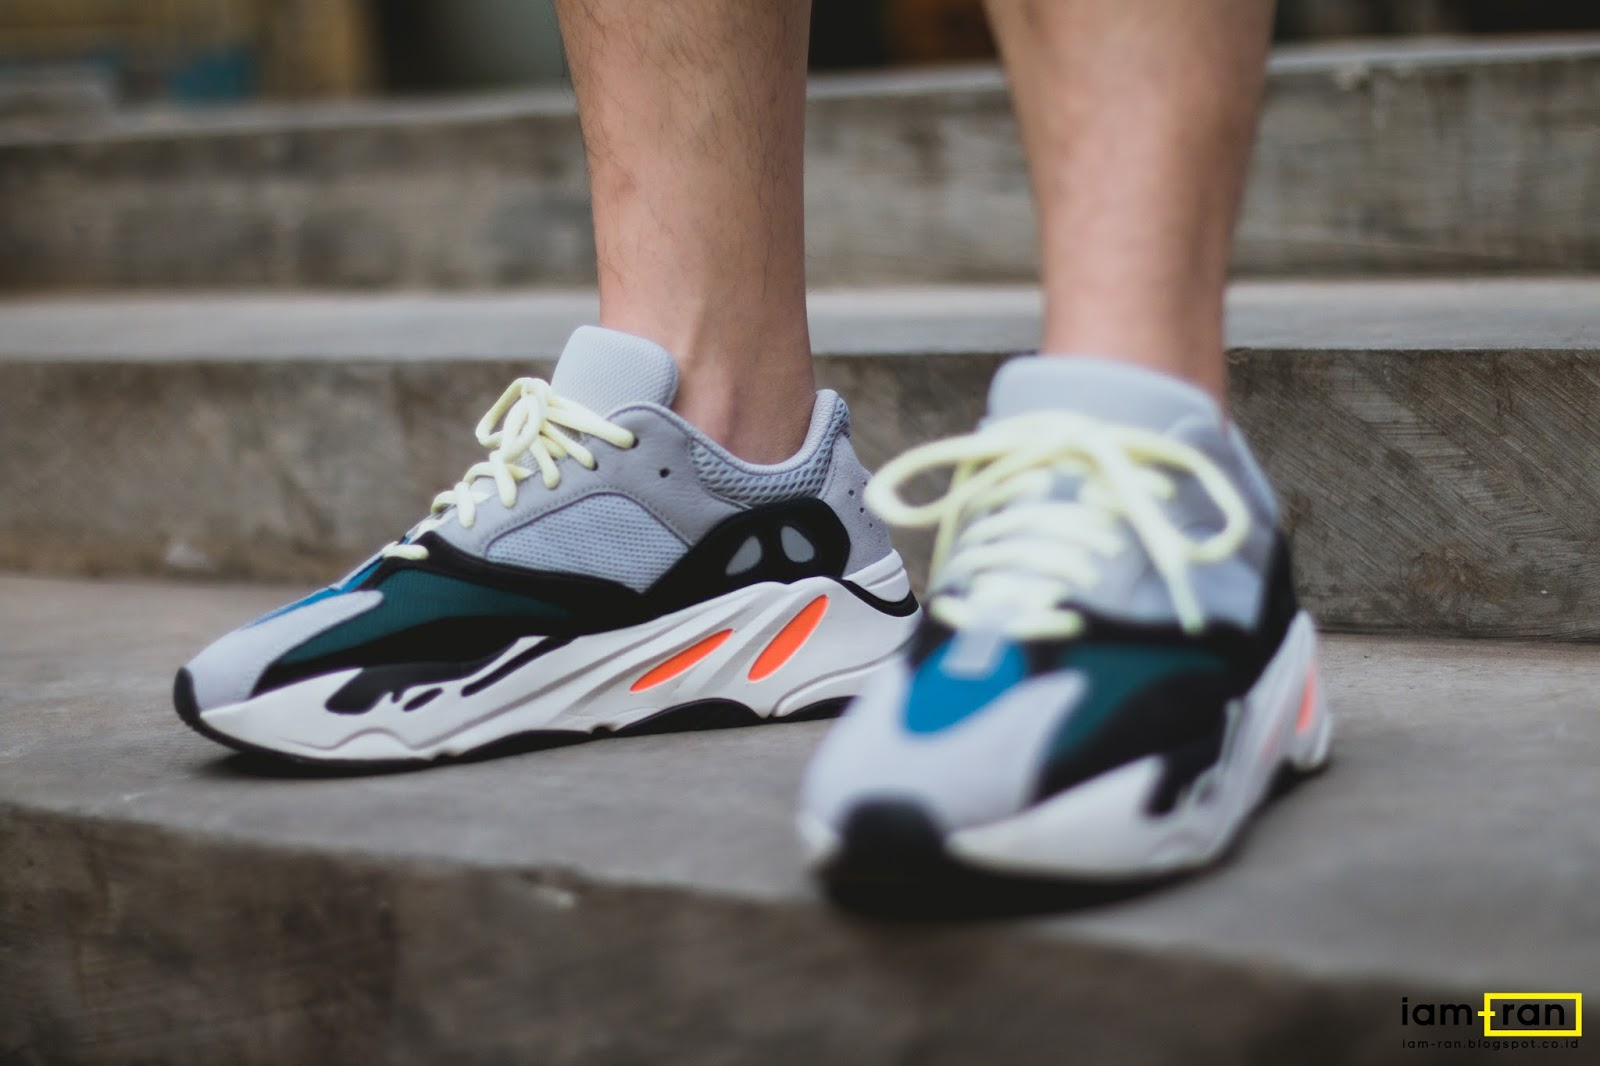 39ed4e907a2 Dimas indro on feet. Sneakers   Adidas Yeezy 700